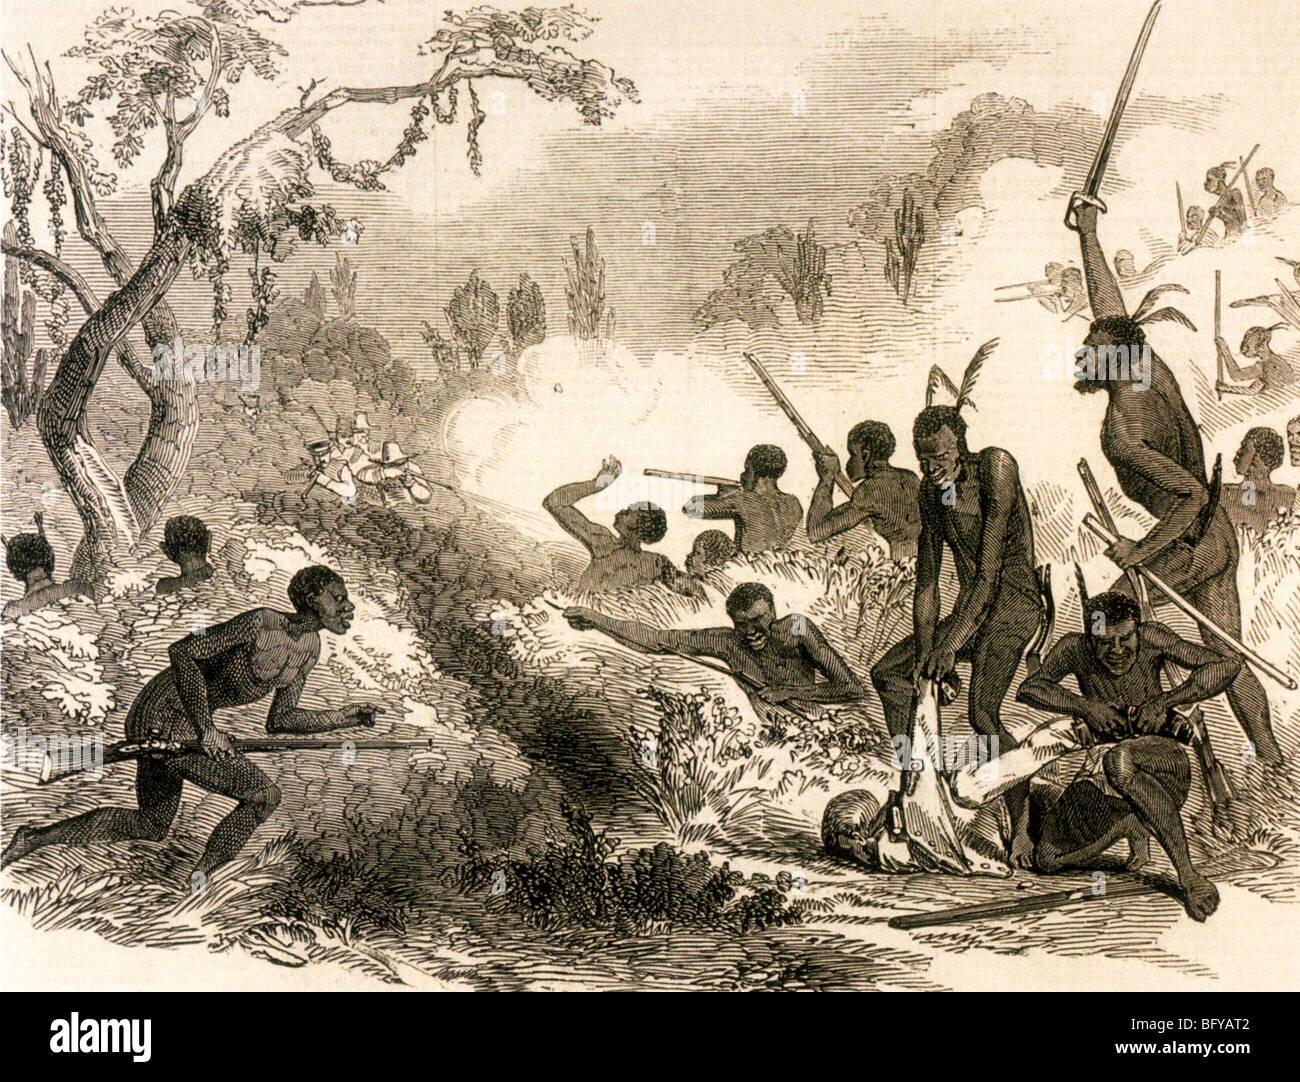 XHOSA tribesmen ambush British troops in one of the Cape Frontier Wars also known as the Kaffir Wars in the mid - Stock Image